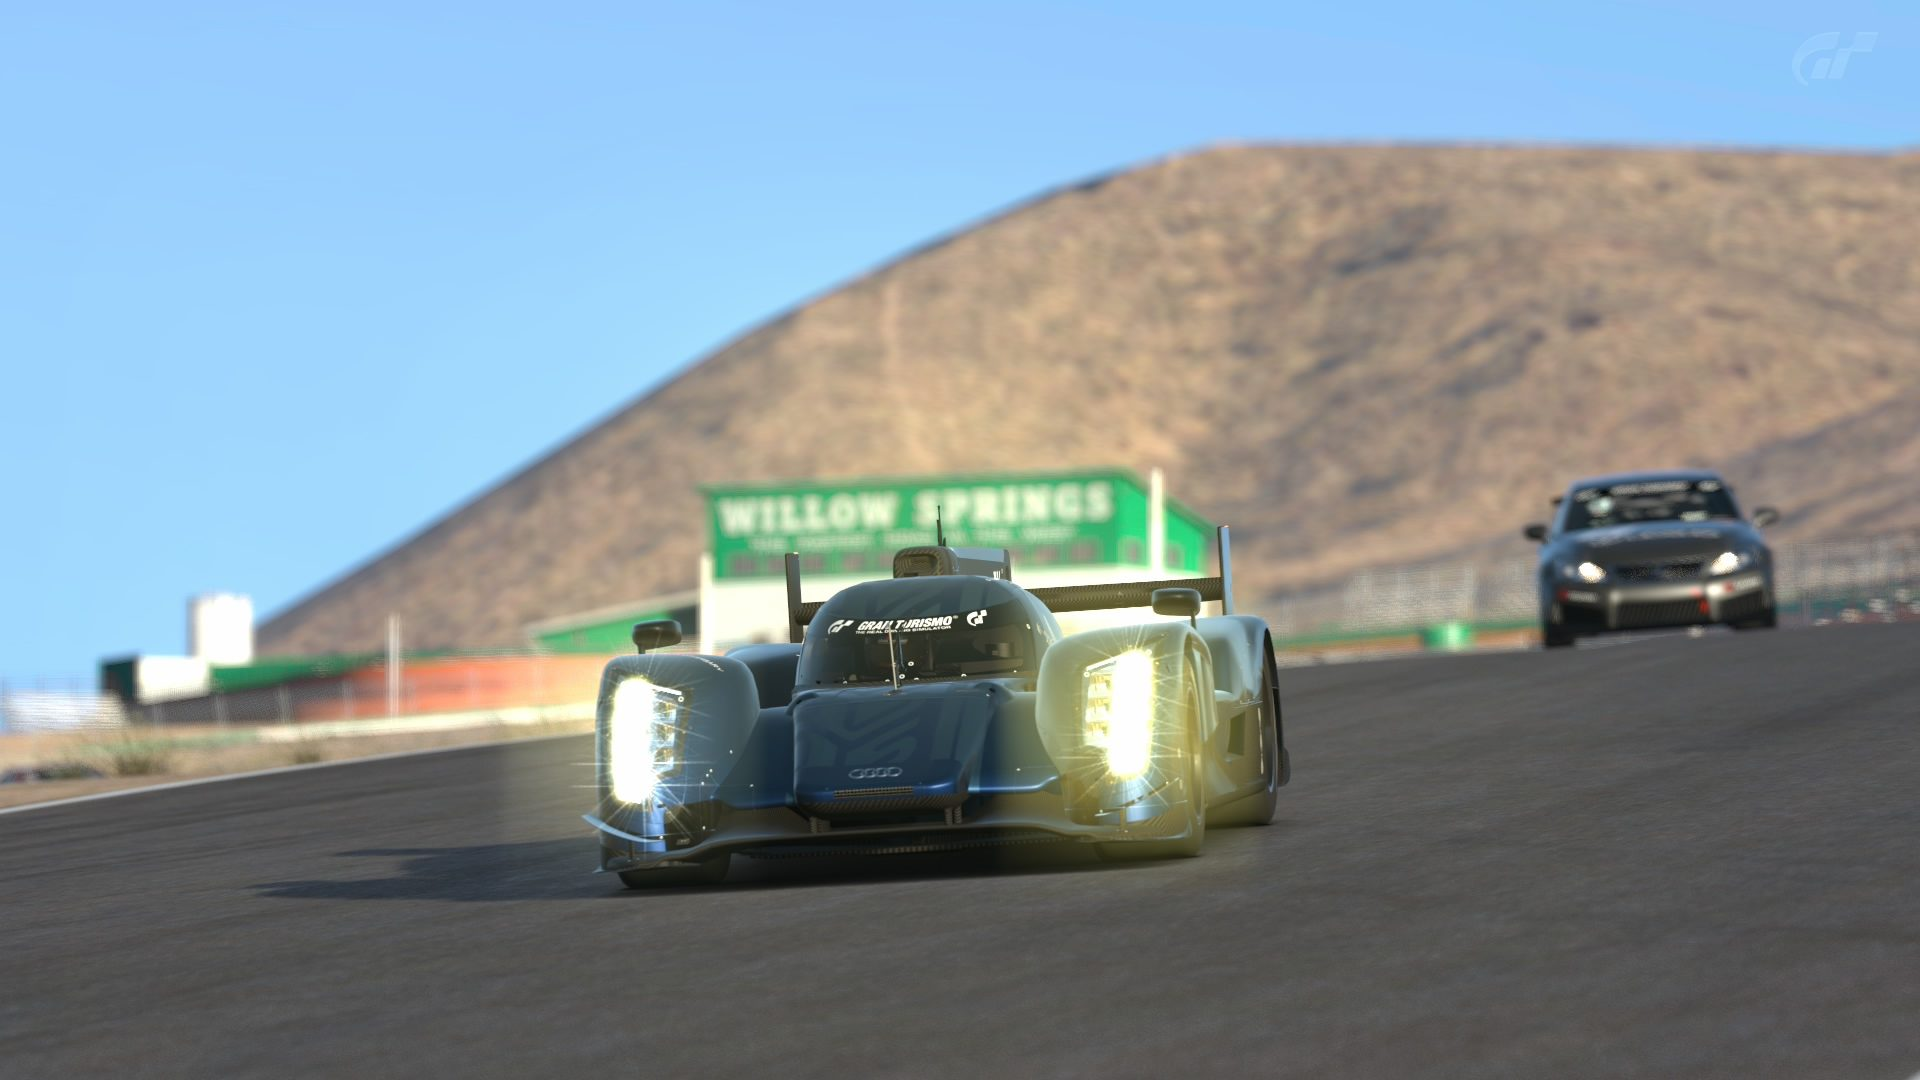 Willow Springs International Raceway - Big Willow_1.jpg